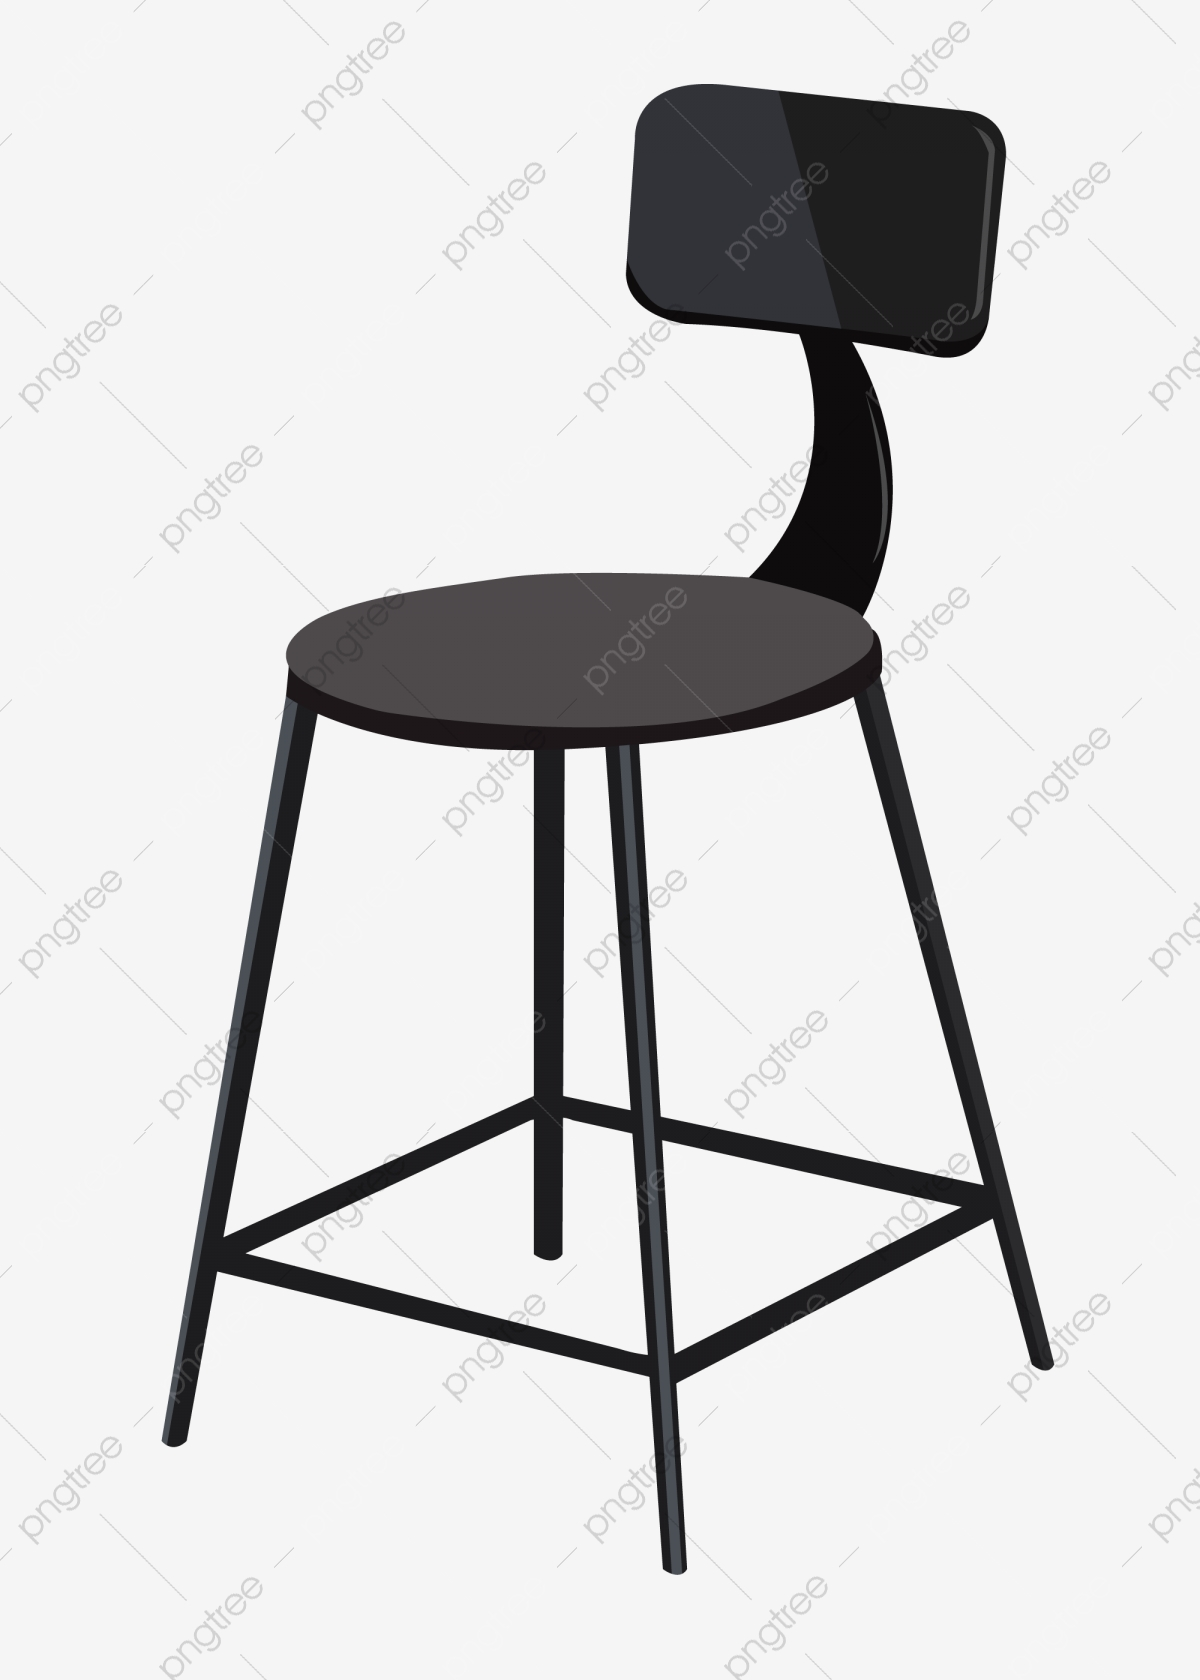 Cute Stool Illustration Wooden Retro Png And Vector With Transparent Background For Free Download